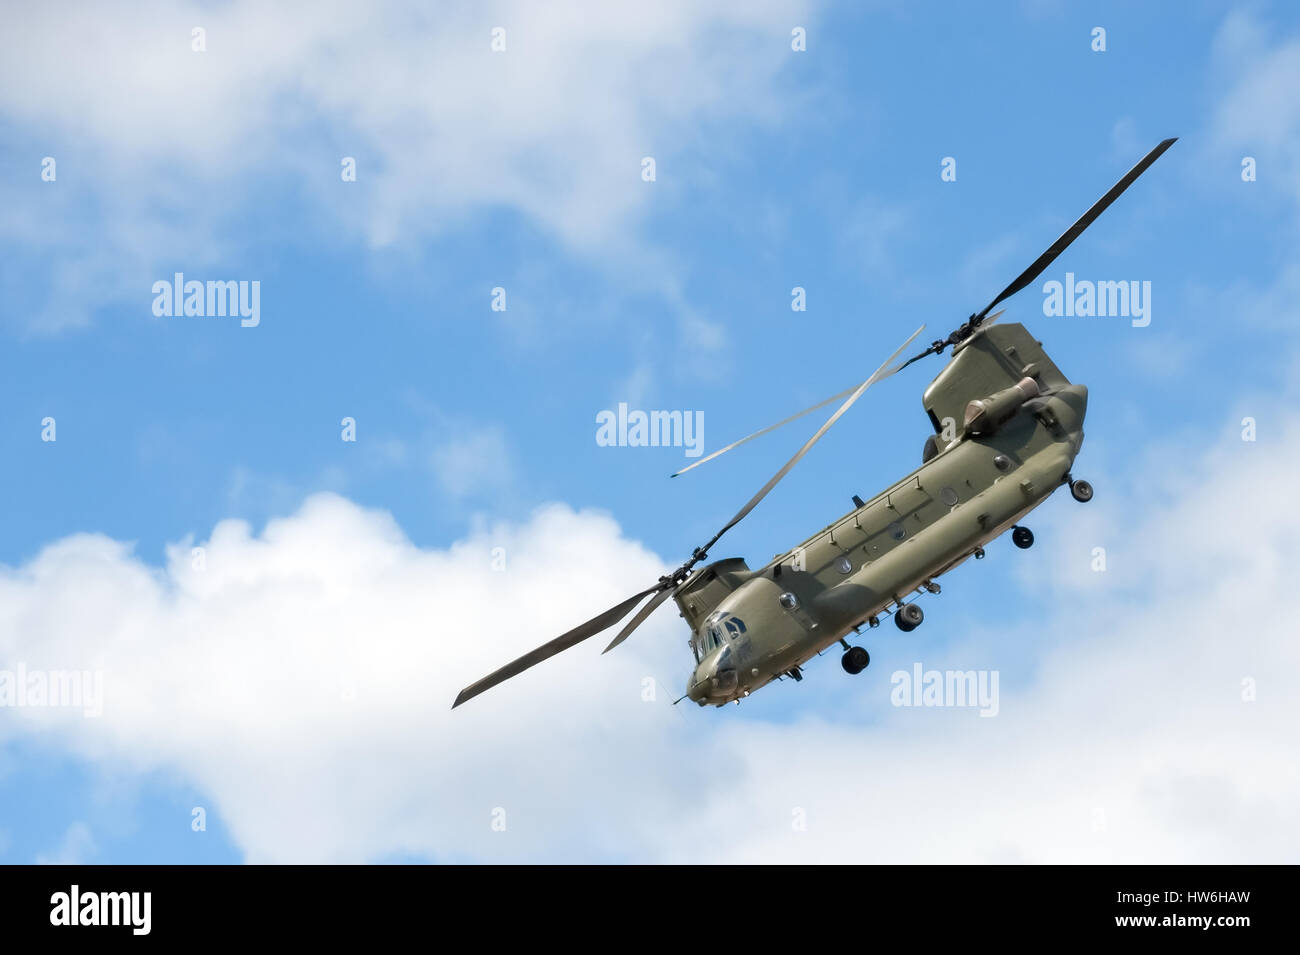 military helicopter in a steep flight maneuver - Stock Image